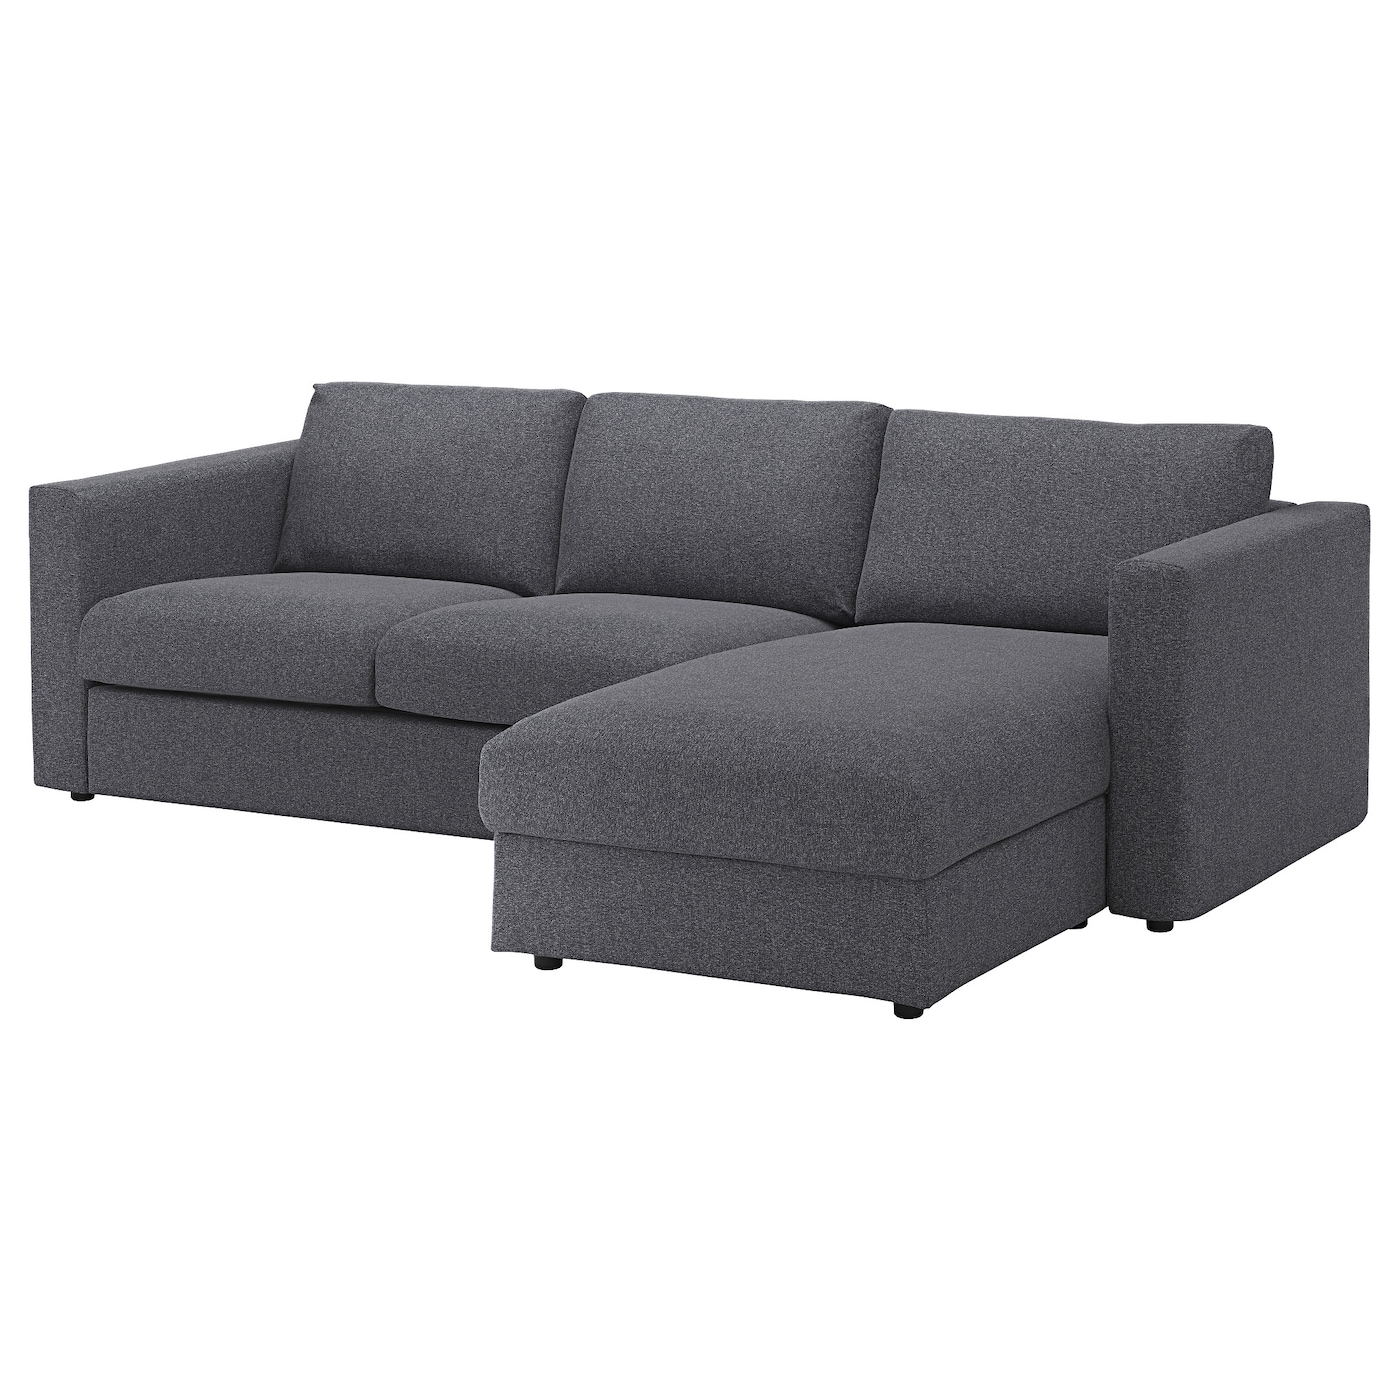 vimle 3 seat sofa with chaise longue gunnared medium grey. Black Bedroom Furniture Sets. Home Design Ideas